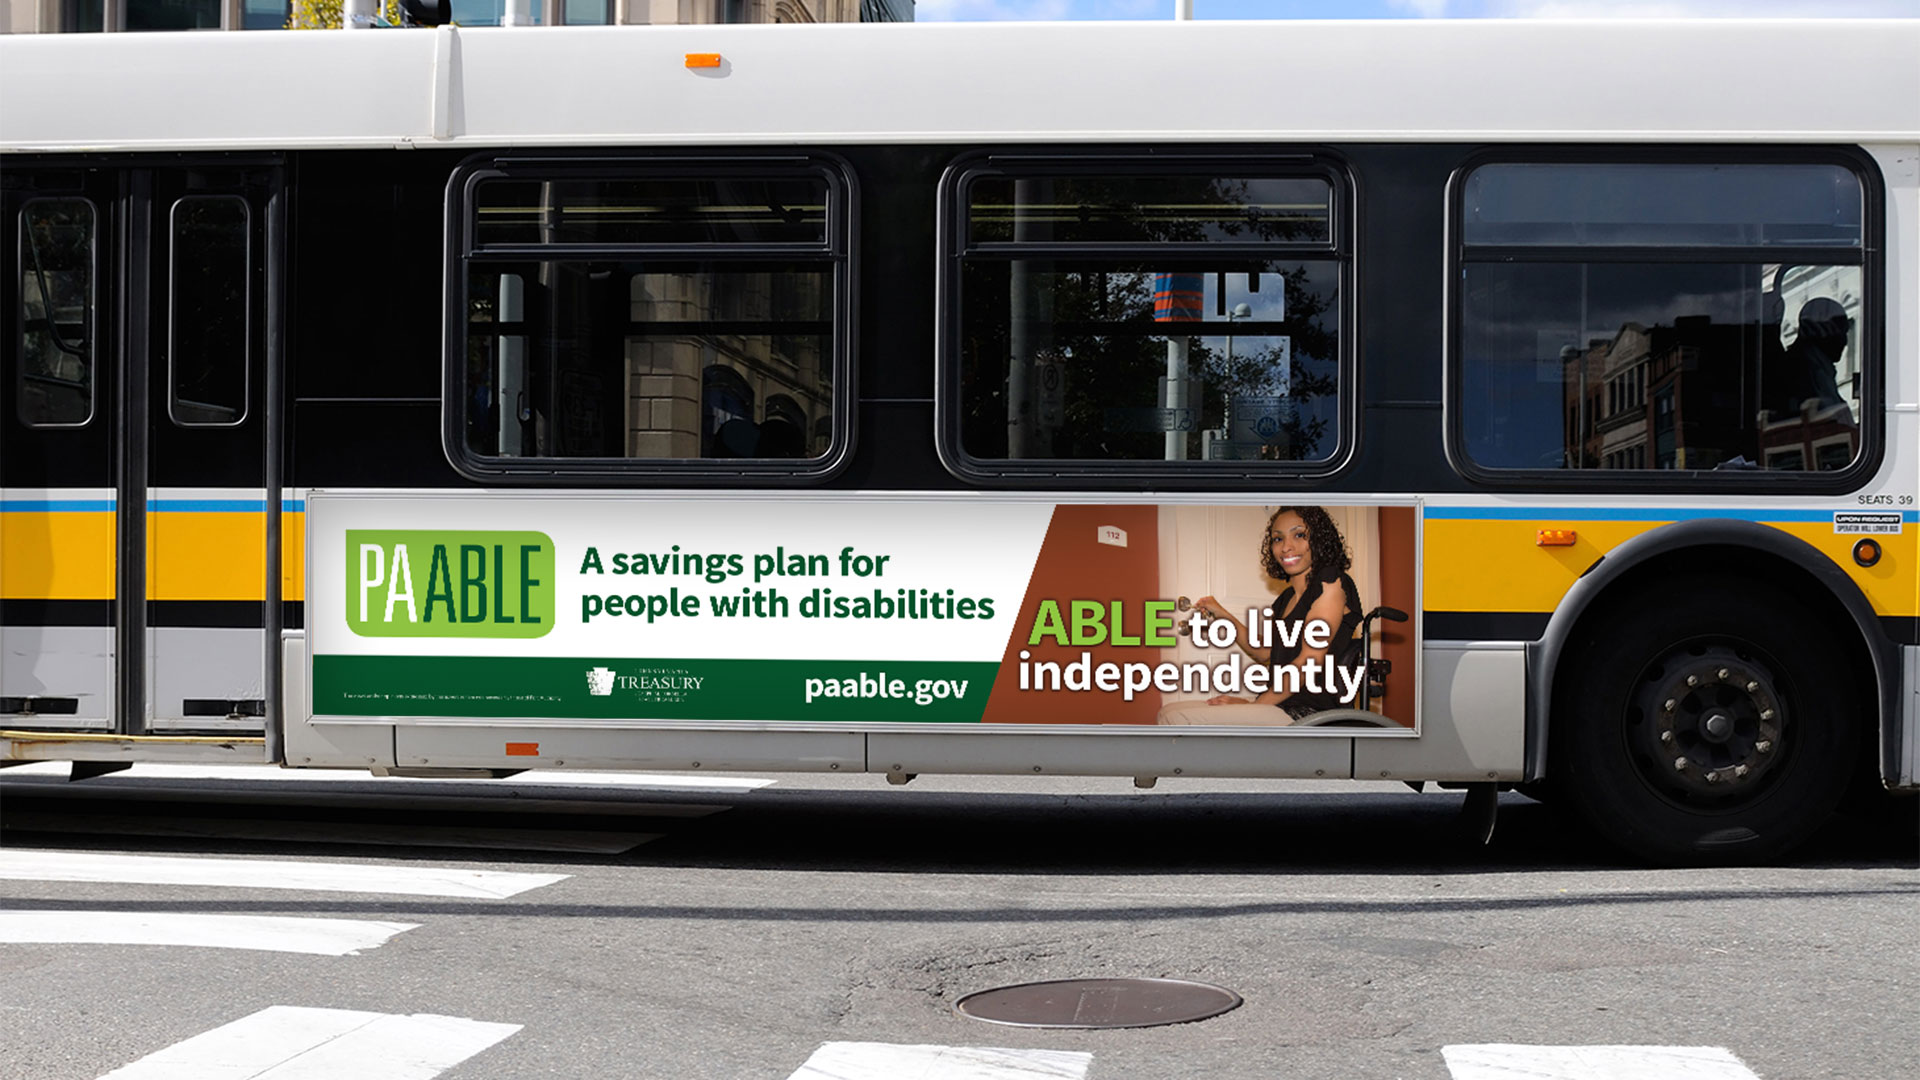 An advertisement on the side of a bus depicting PA ABLE campaign graphics